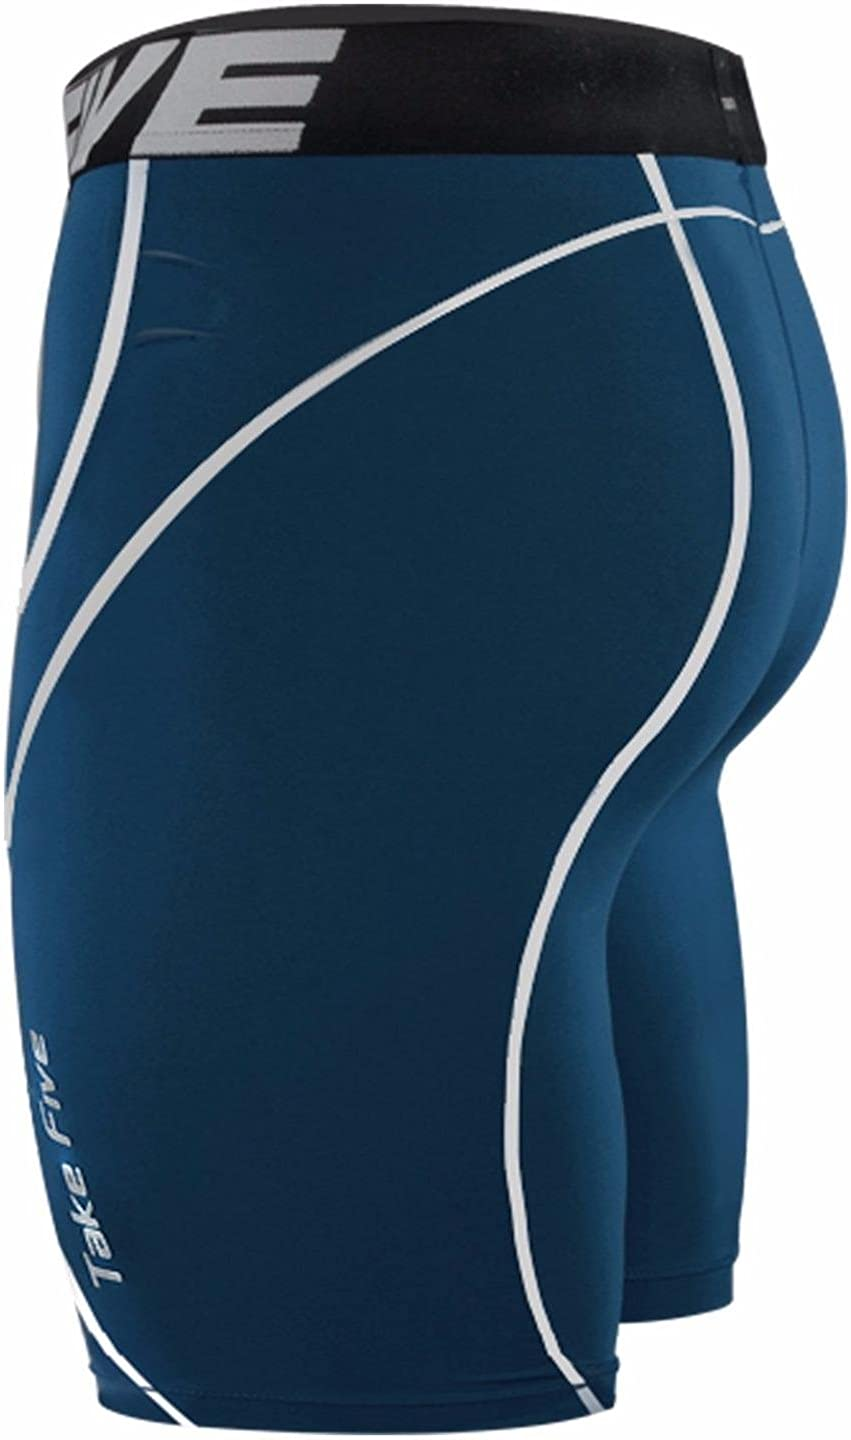 JustOneStyle New Take Five Base Layer Mens Compression Skin Tights 034 Navy Sports Shorts